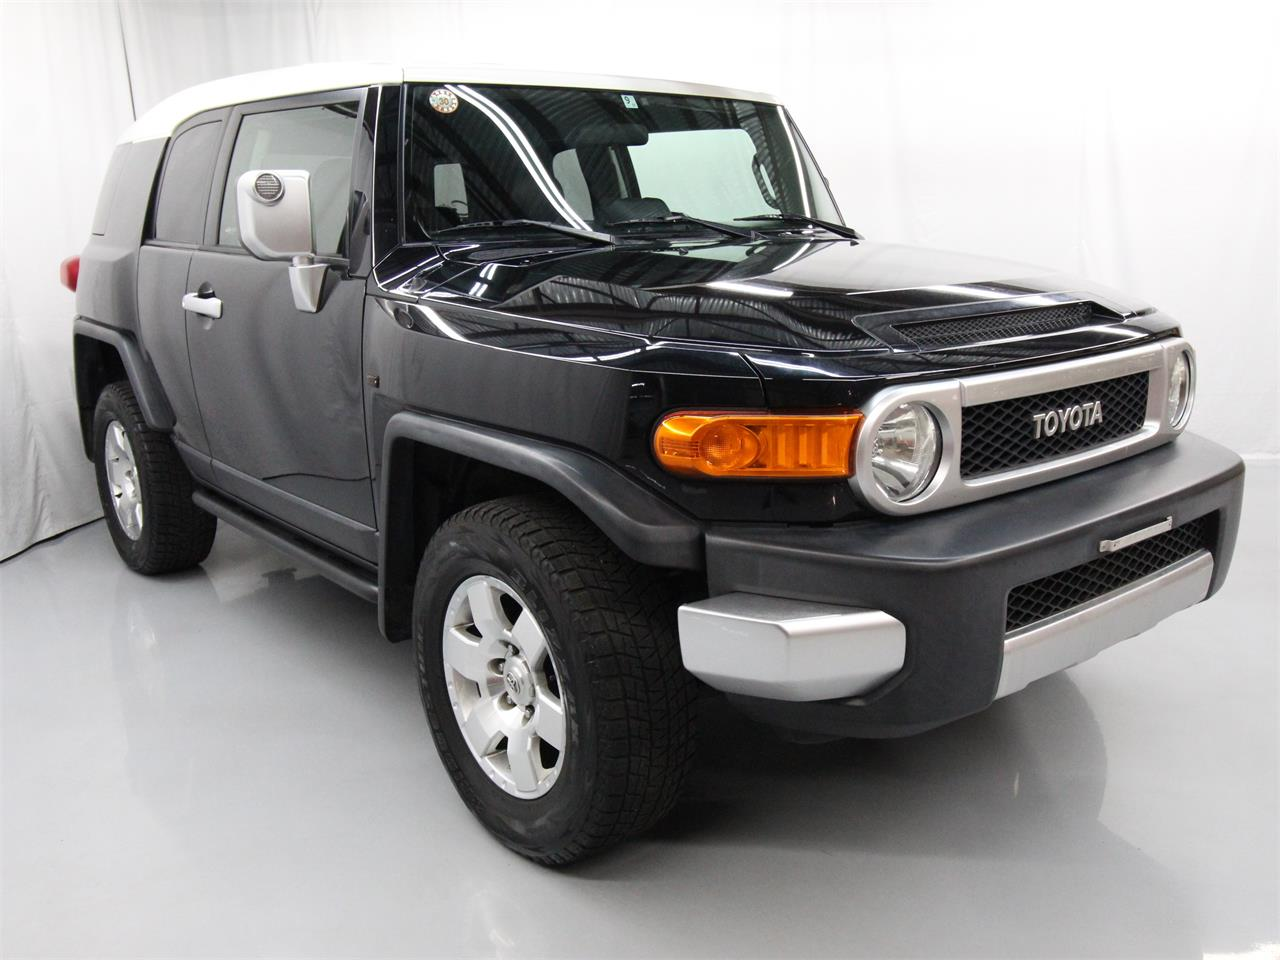 Large Picture of '07 Toyota FJ Cruiser located in Virginia Offered by Duncan Imports & Classic Cars - Q6UM